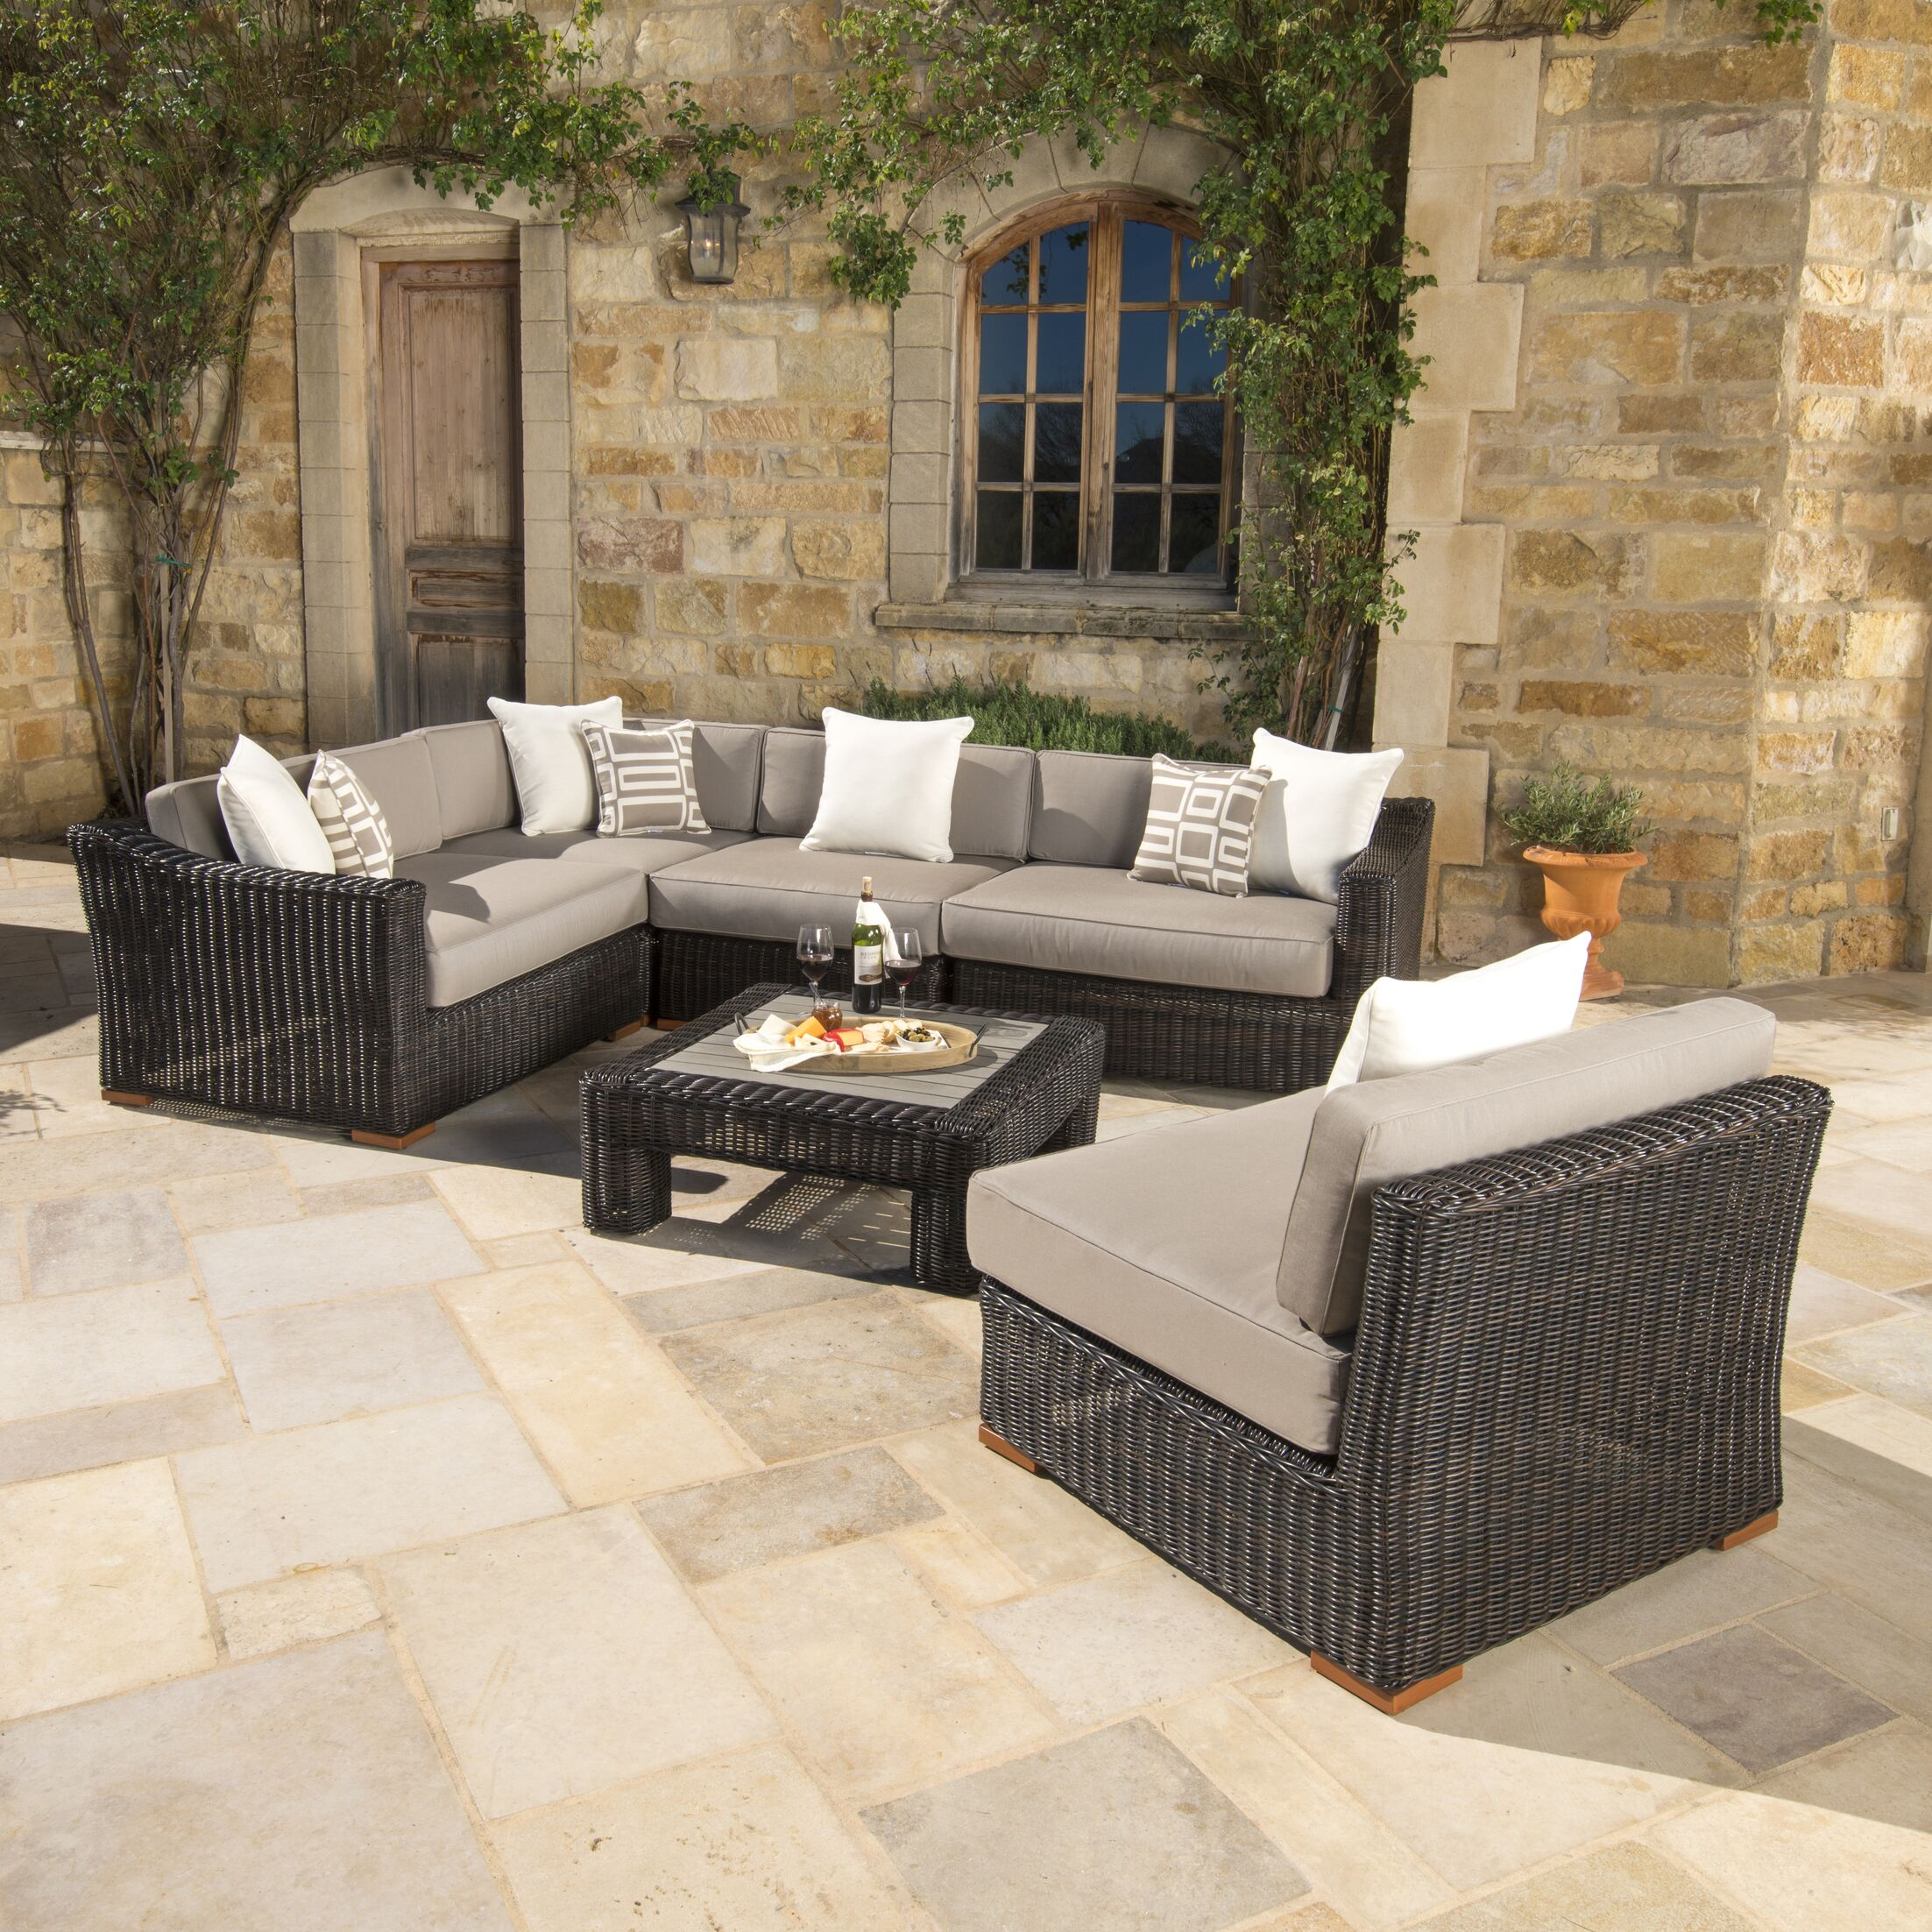 Monroeville 6 piece Sunbrella Sectional Set with Cushions Fabric: Frank Stone